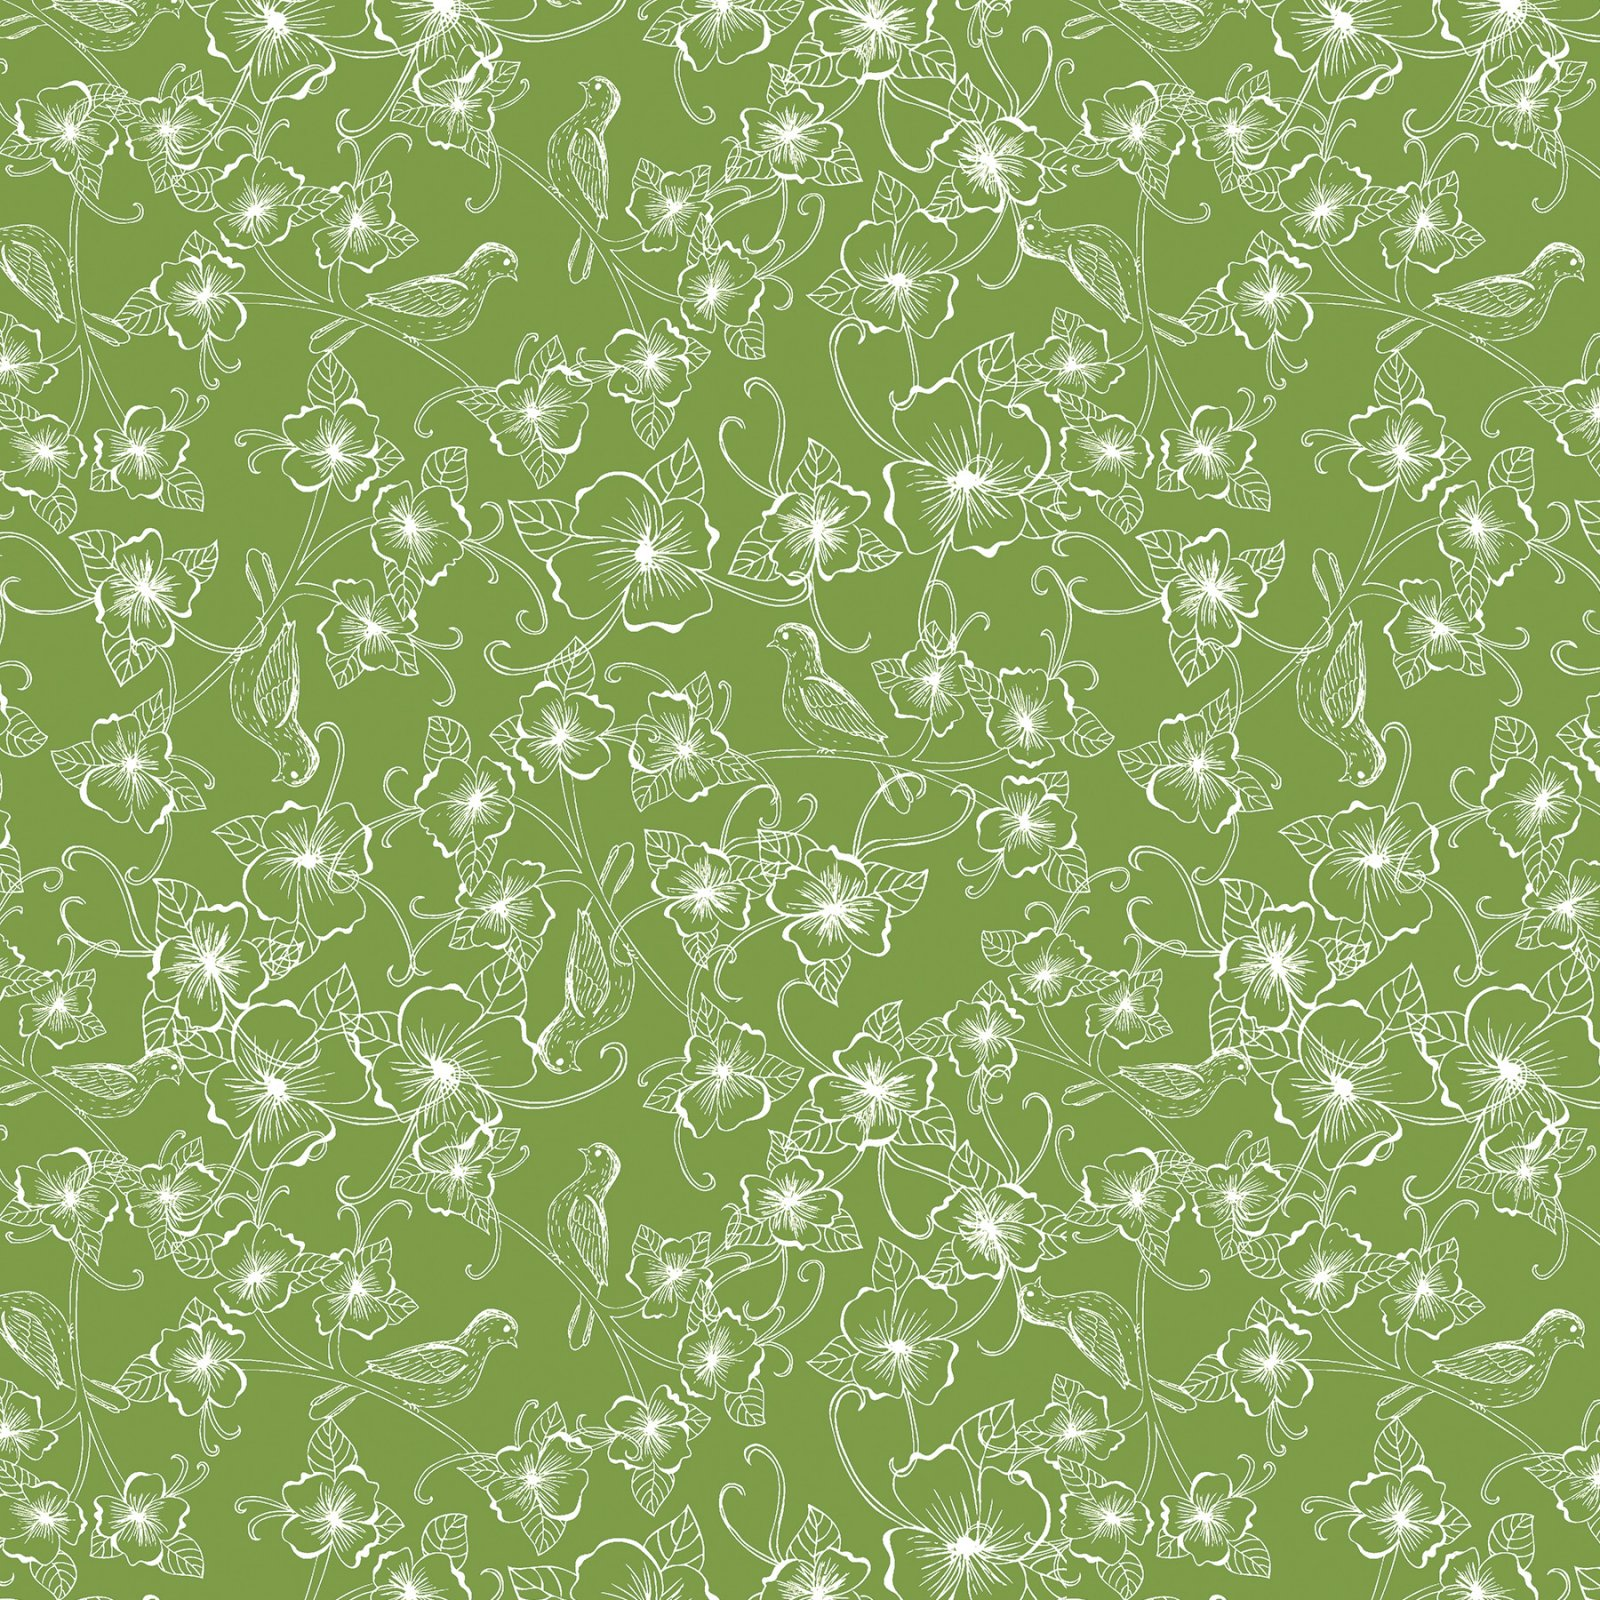 Fabric Palette Fat Quarter <br>Green - Design may vary <br>MD-G-PC352